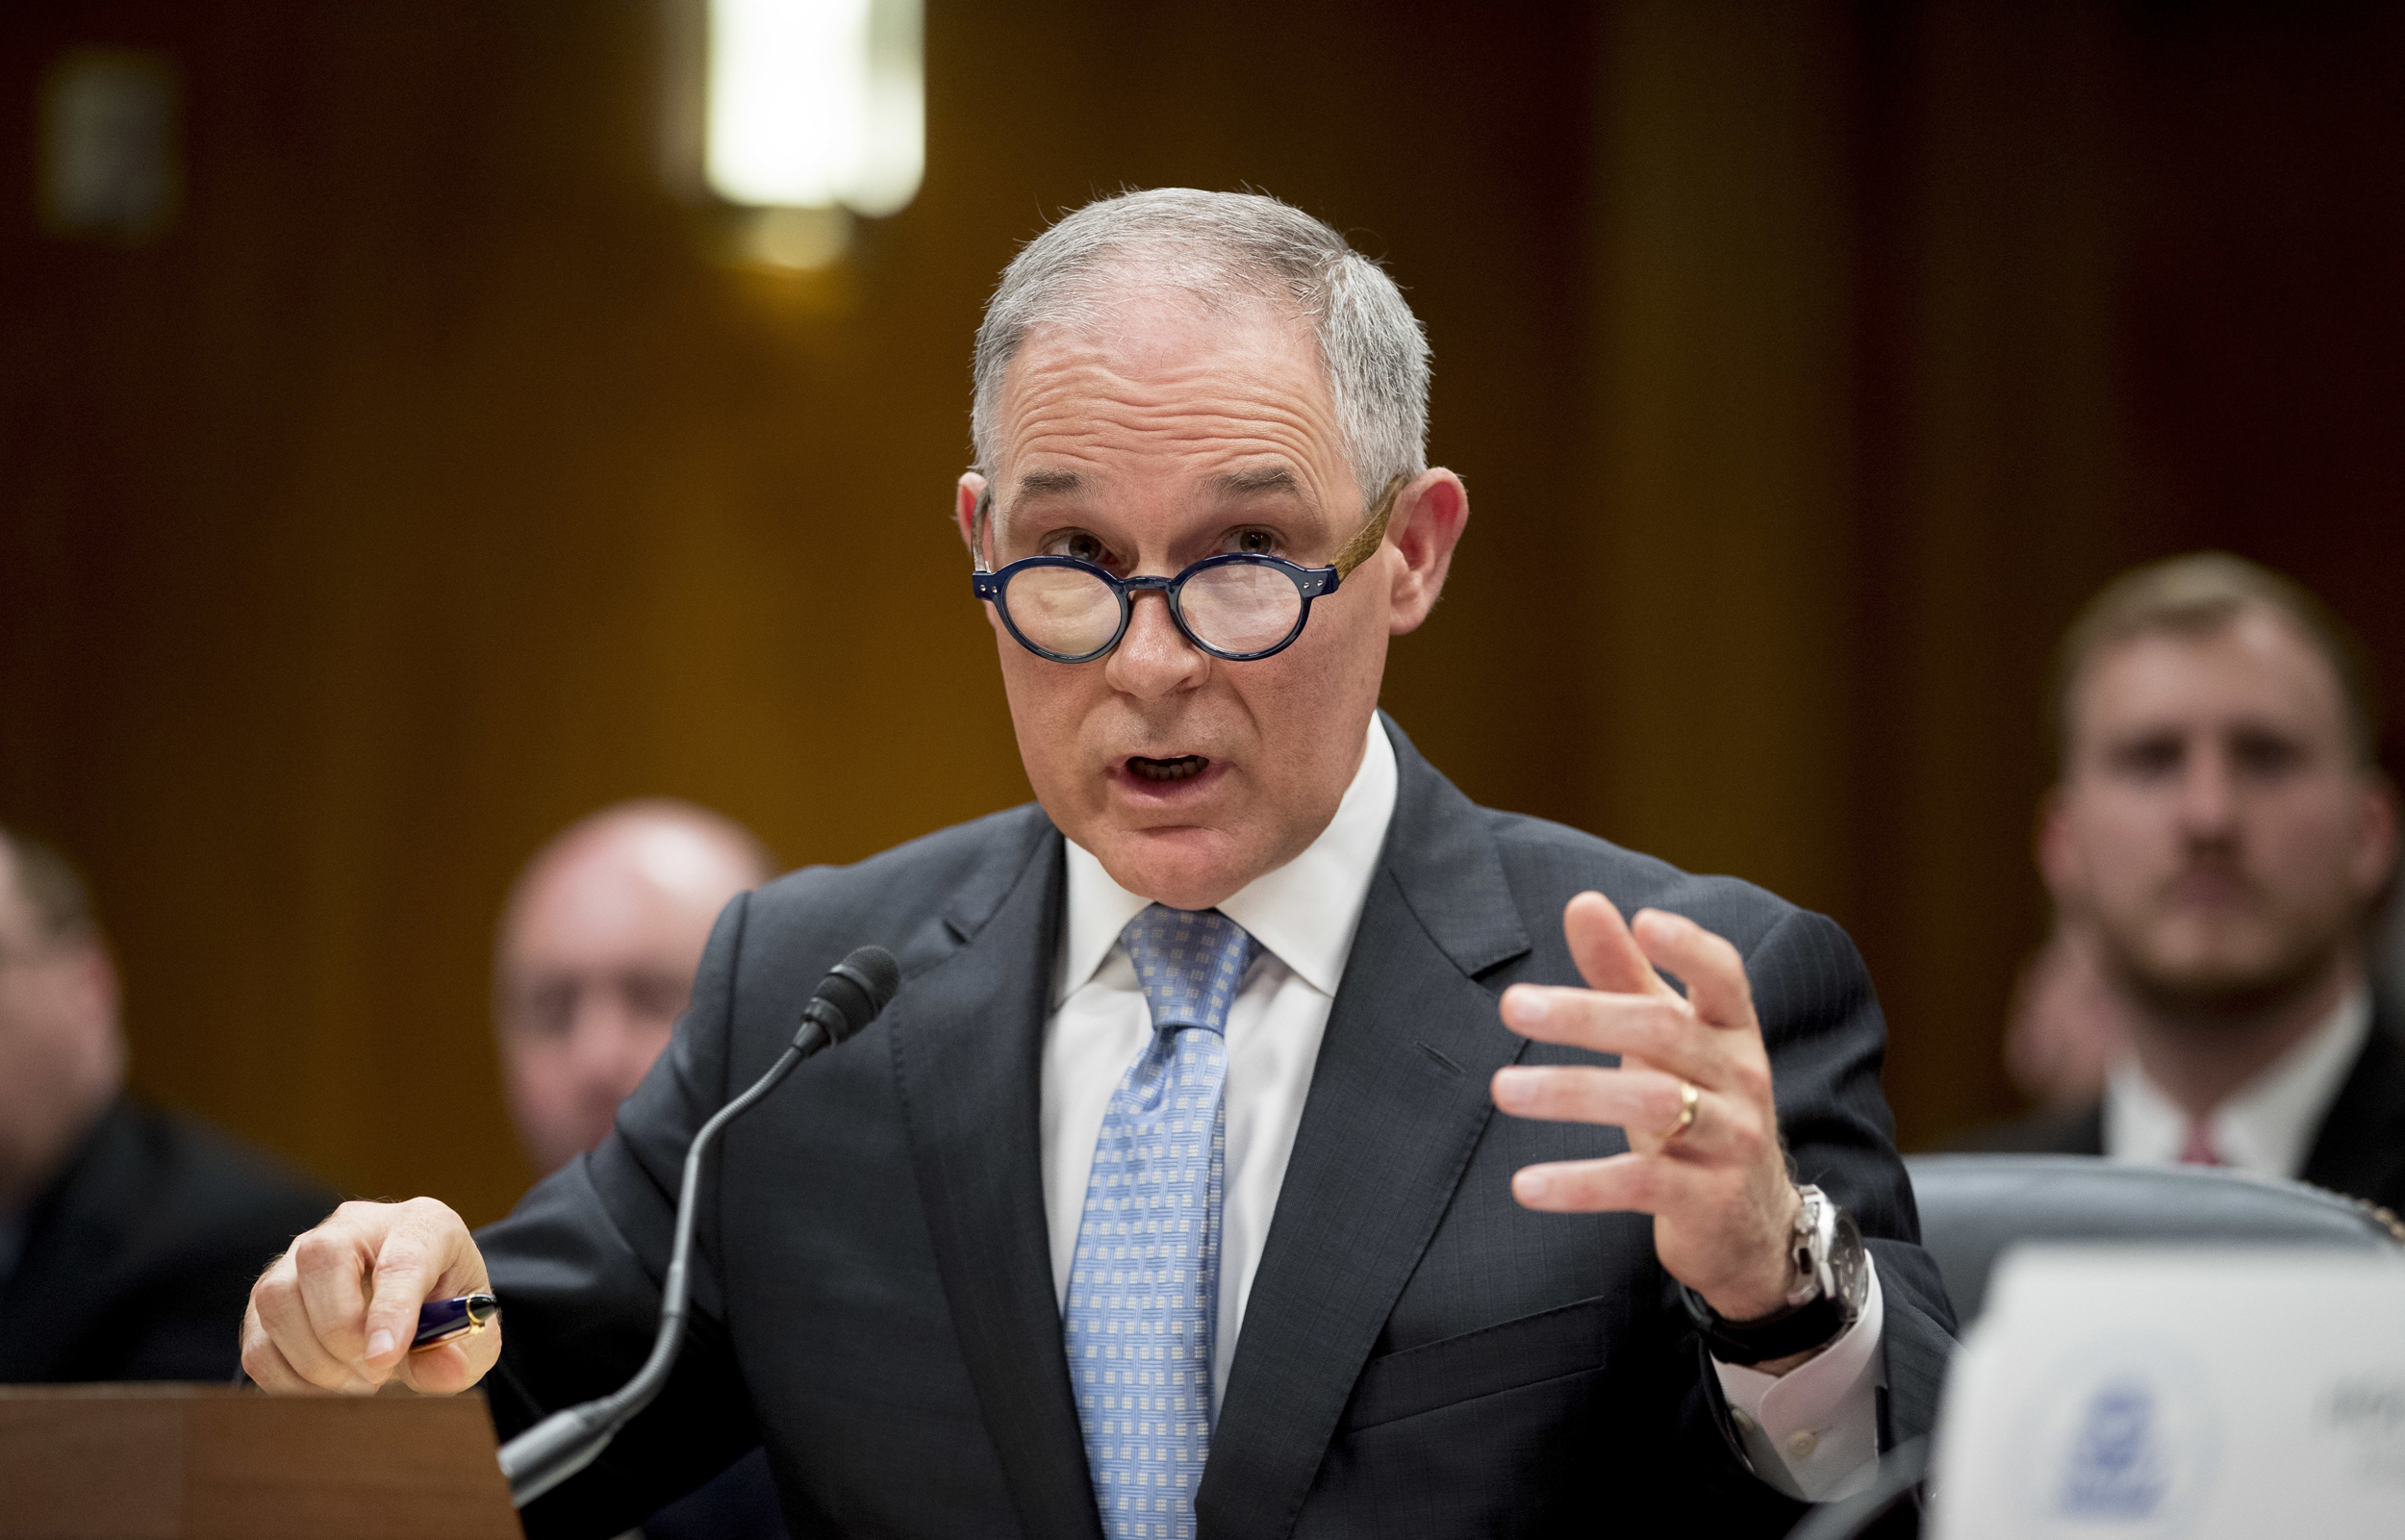 Pruitt:-I-don't-recall-asking-security-detail-to-use-sirens-in-traffic